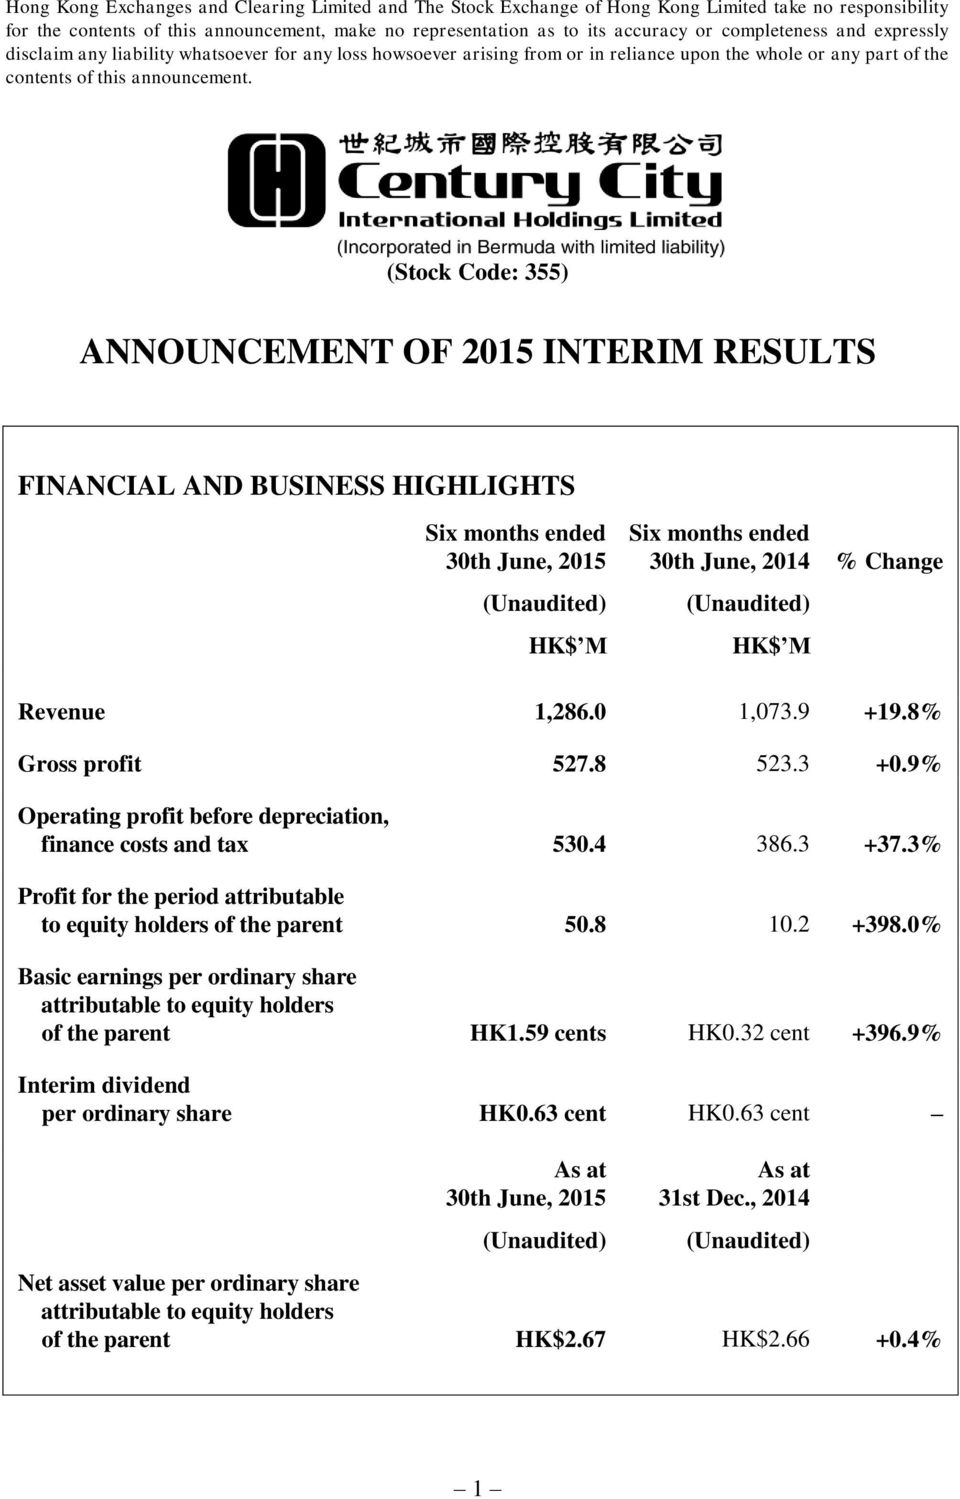 (Stock Code: 355) ANNOUNCEMENT OF 2015 INTERIM RESULTS FINANCIAL AND BUSINESS HIGHLIGHTS 30th June, 2015 30th June, 2014 % Change Revenue 1,286.0 1,073.9 +19.8% Gross profit 527.8 523.3 +0.